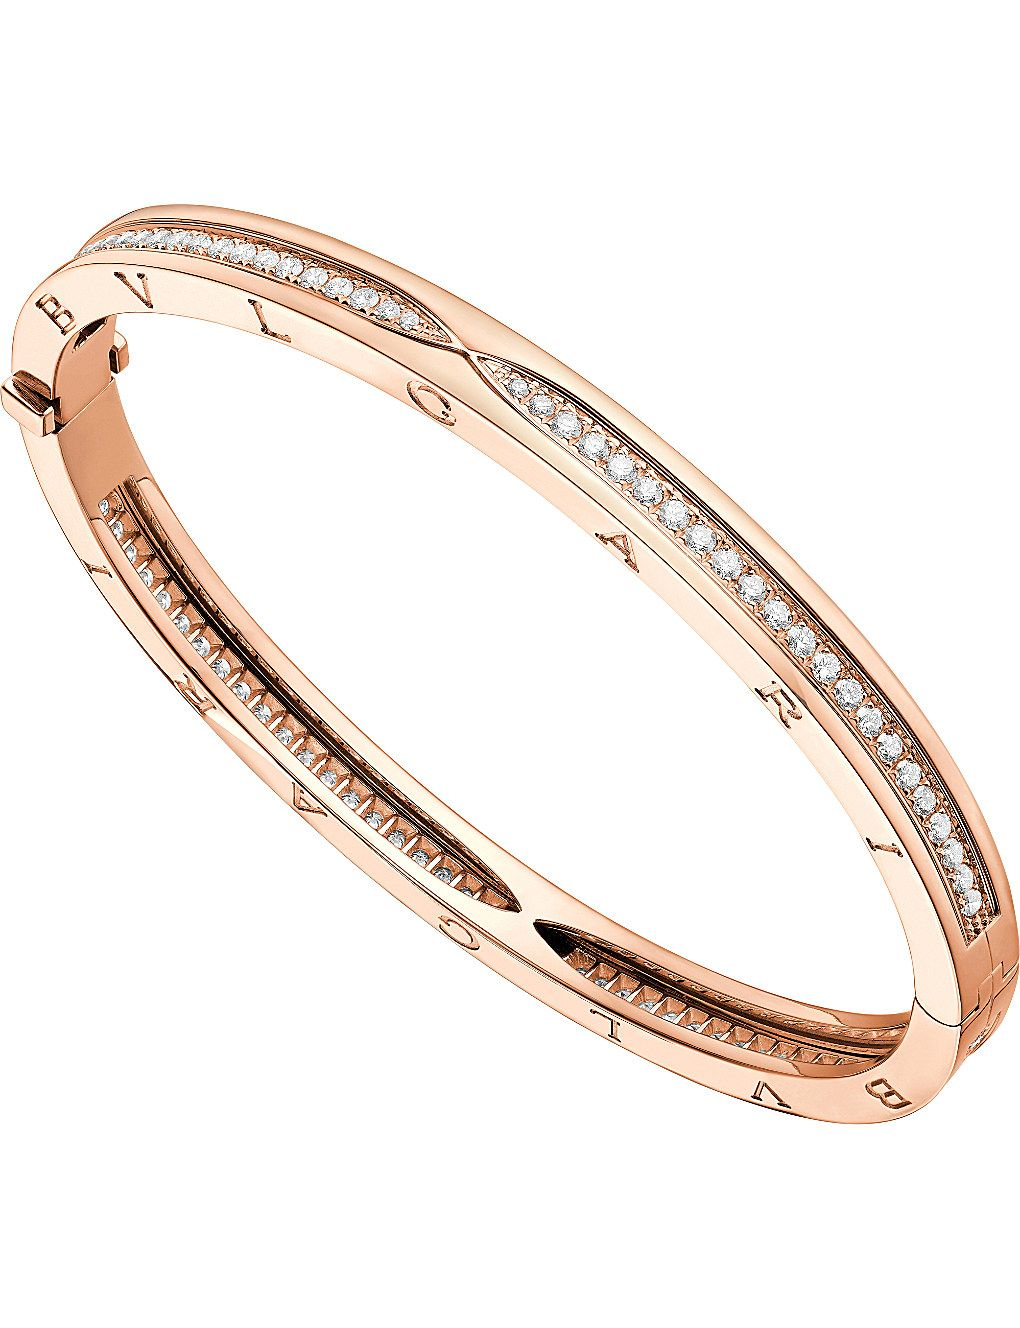 c0f729750 BVLGARI B.zero1 18kt pink-gold and pavé diamond bangle bracelet in ...